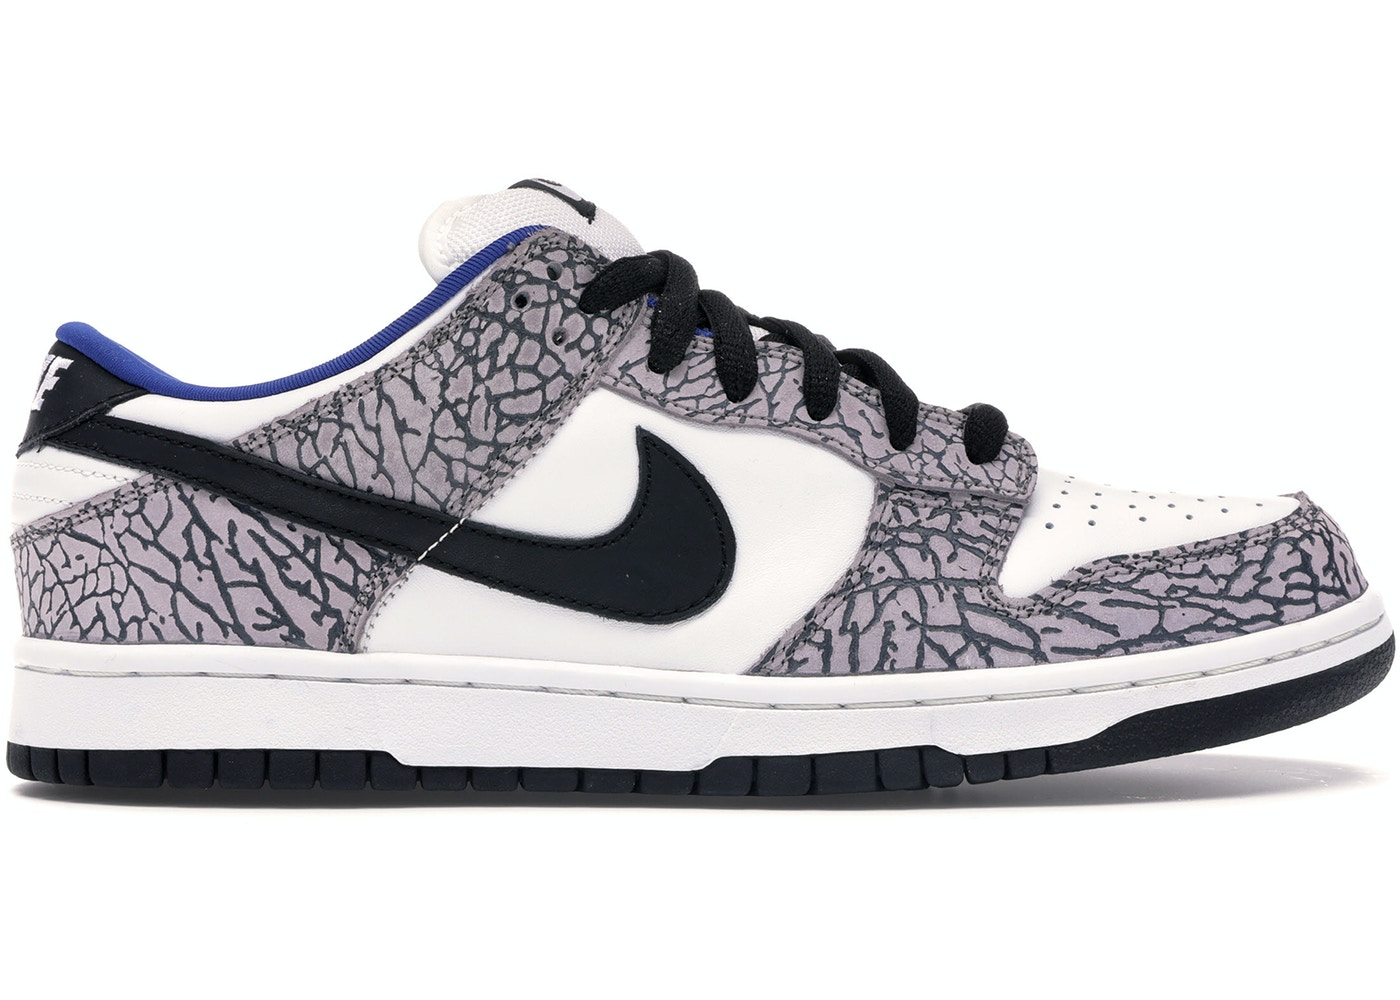 official photos 11b8c 7fe6b Buy Nike SB Shoes & Deadstock Sneakers